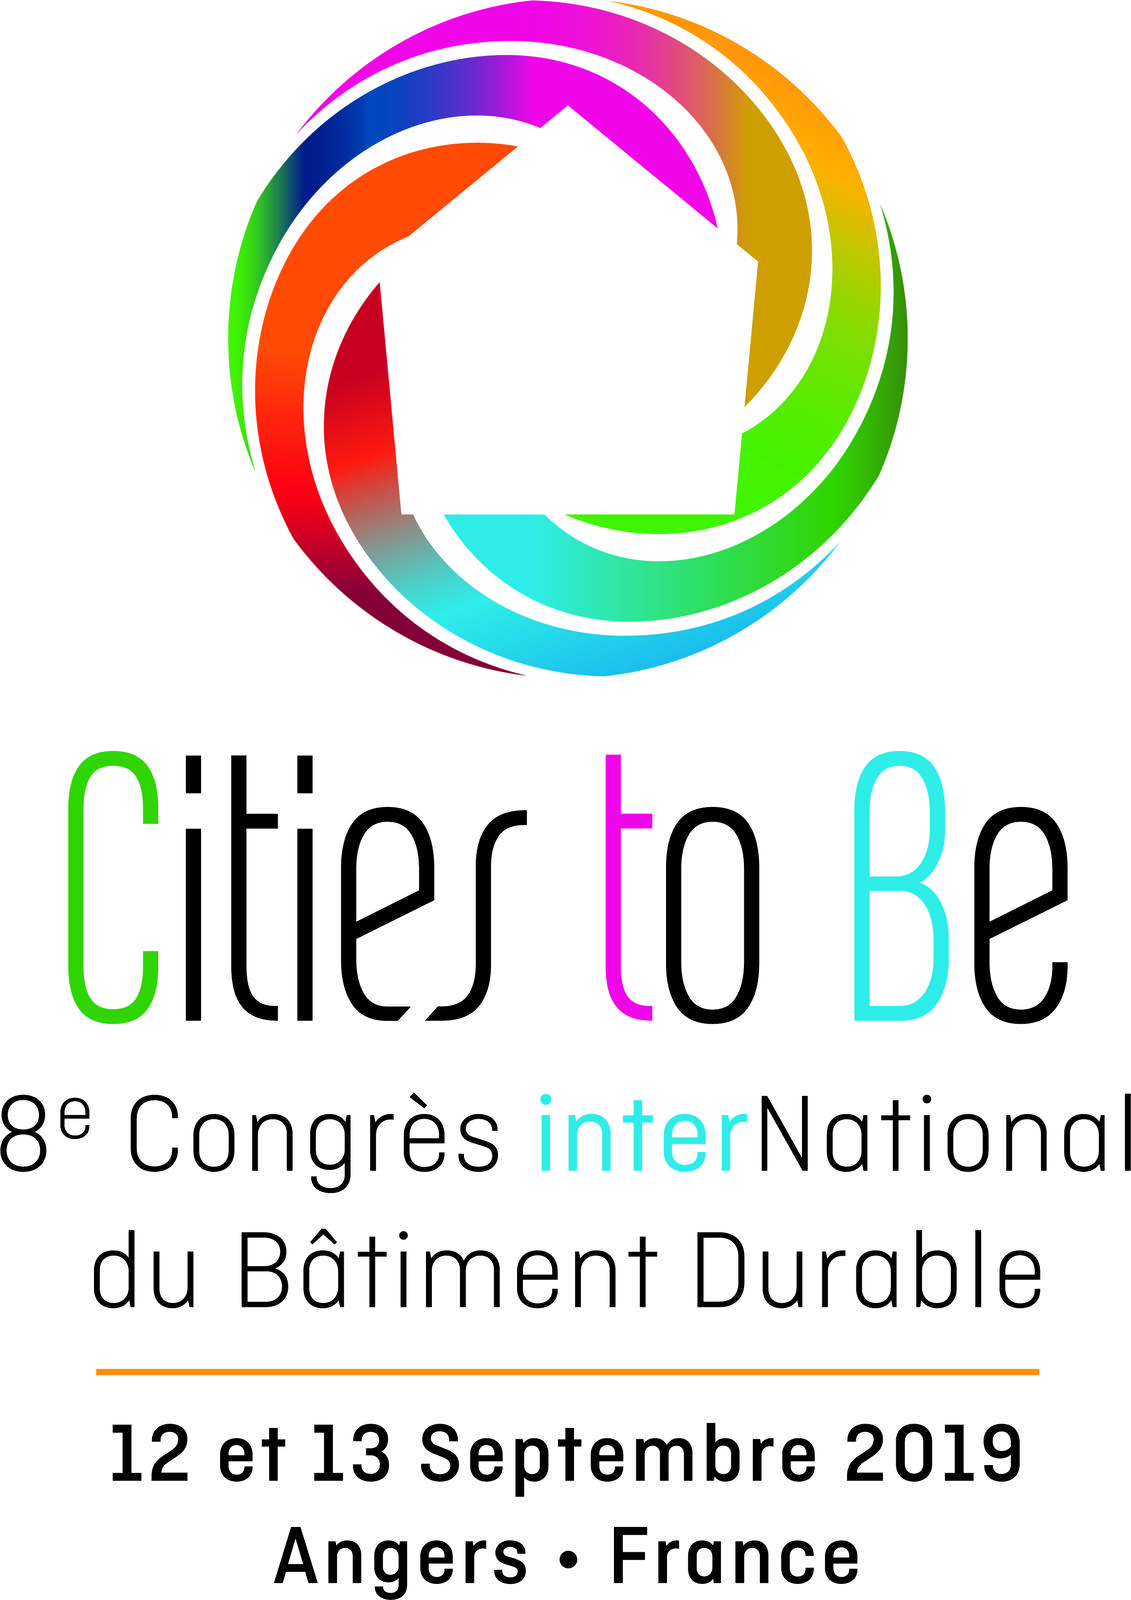 Congrès Cities to Be : le programme est disponible !